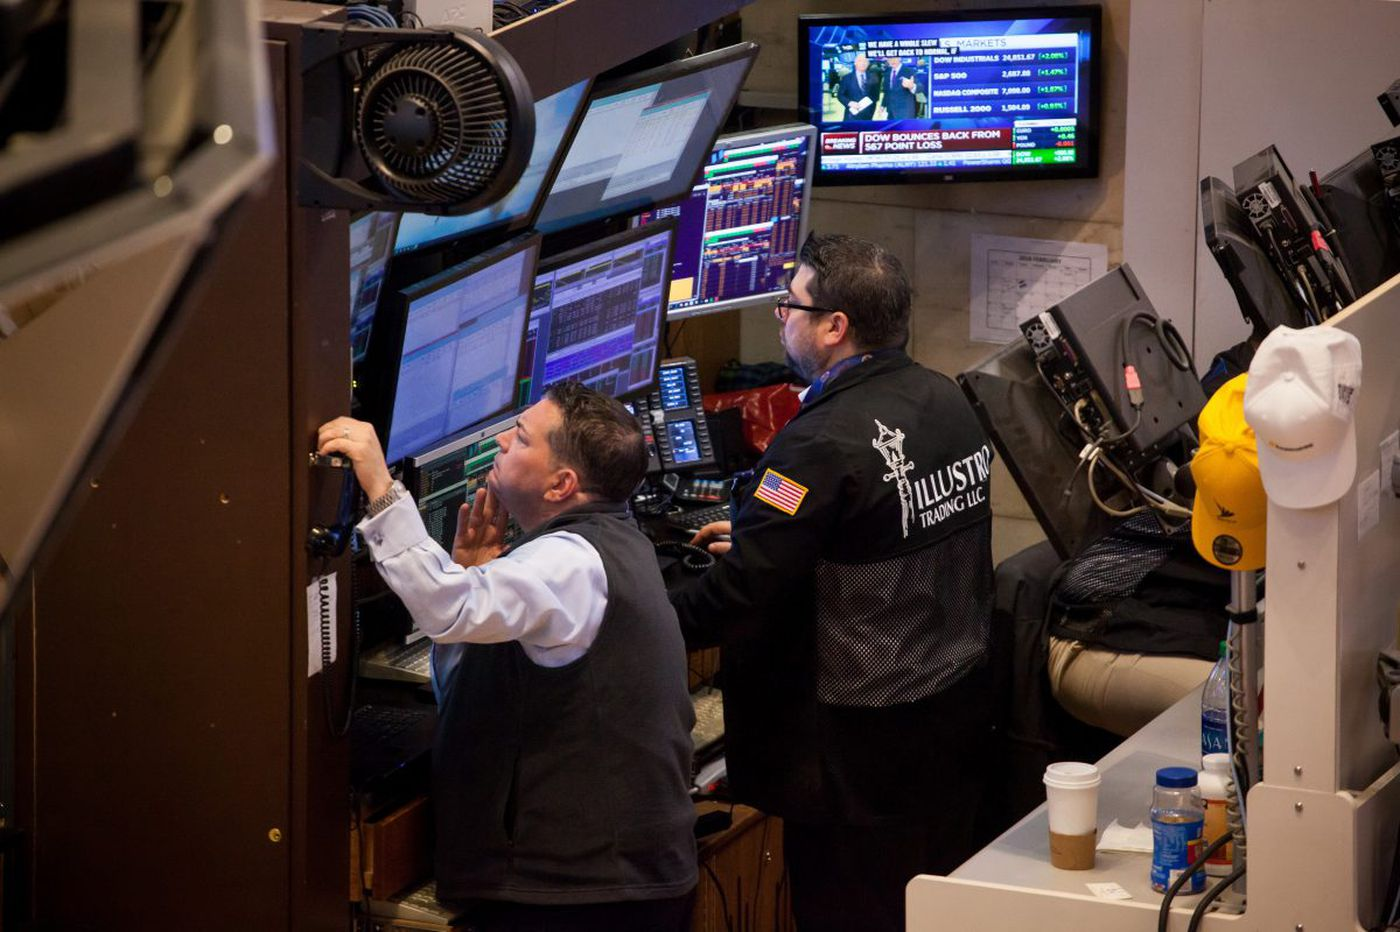 Amateur investors get burned on Wall Street's hottest VIX trades